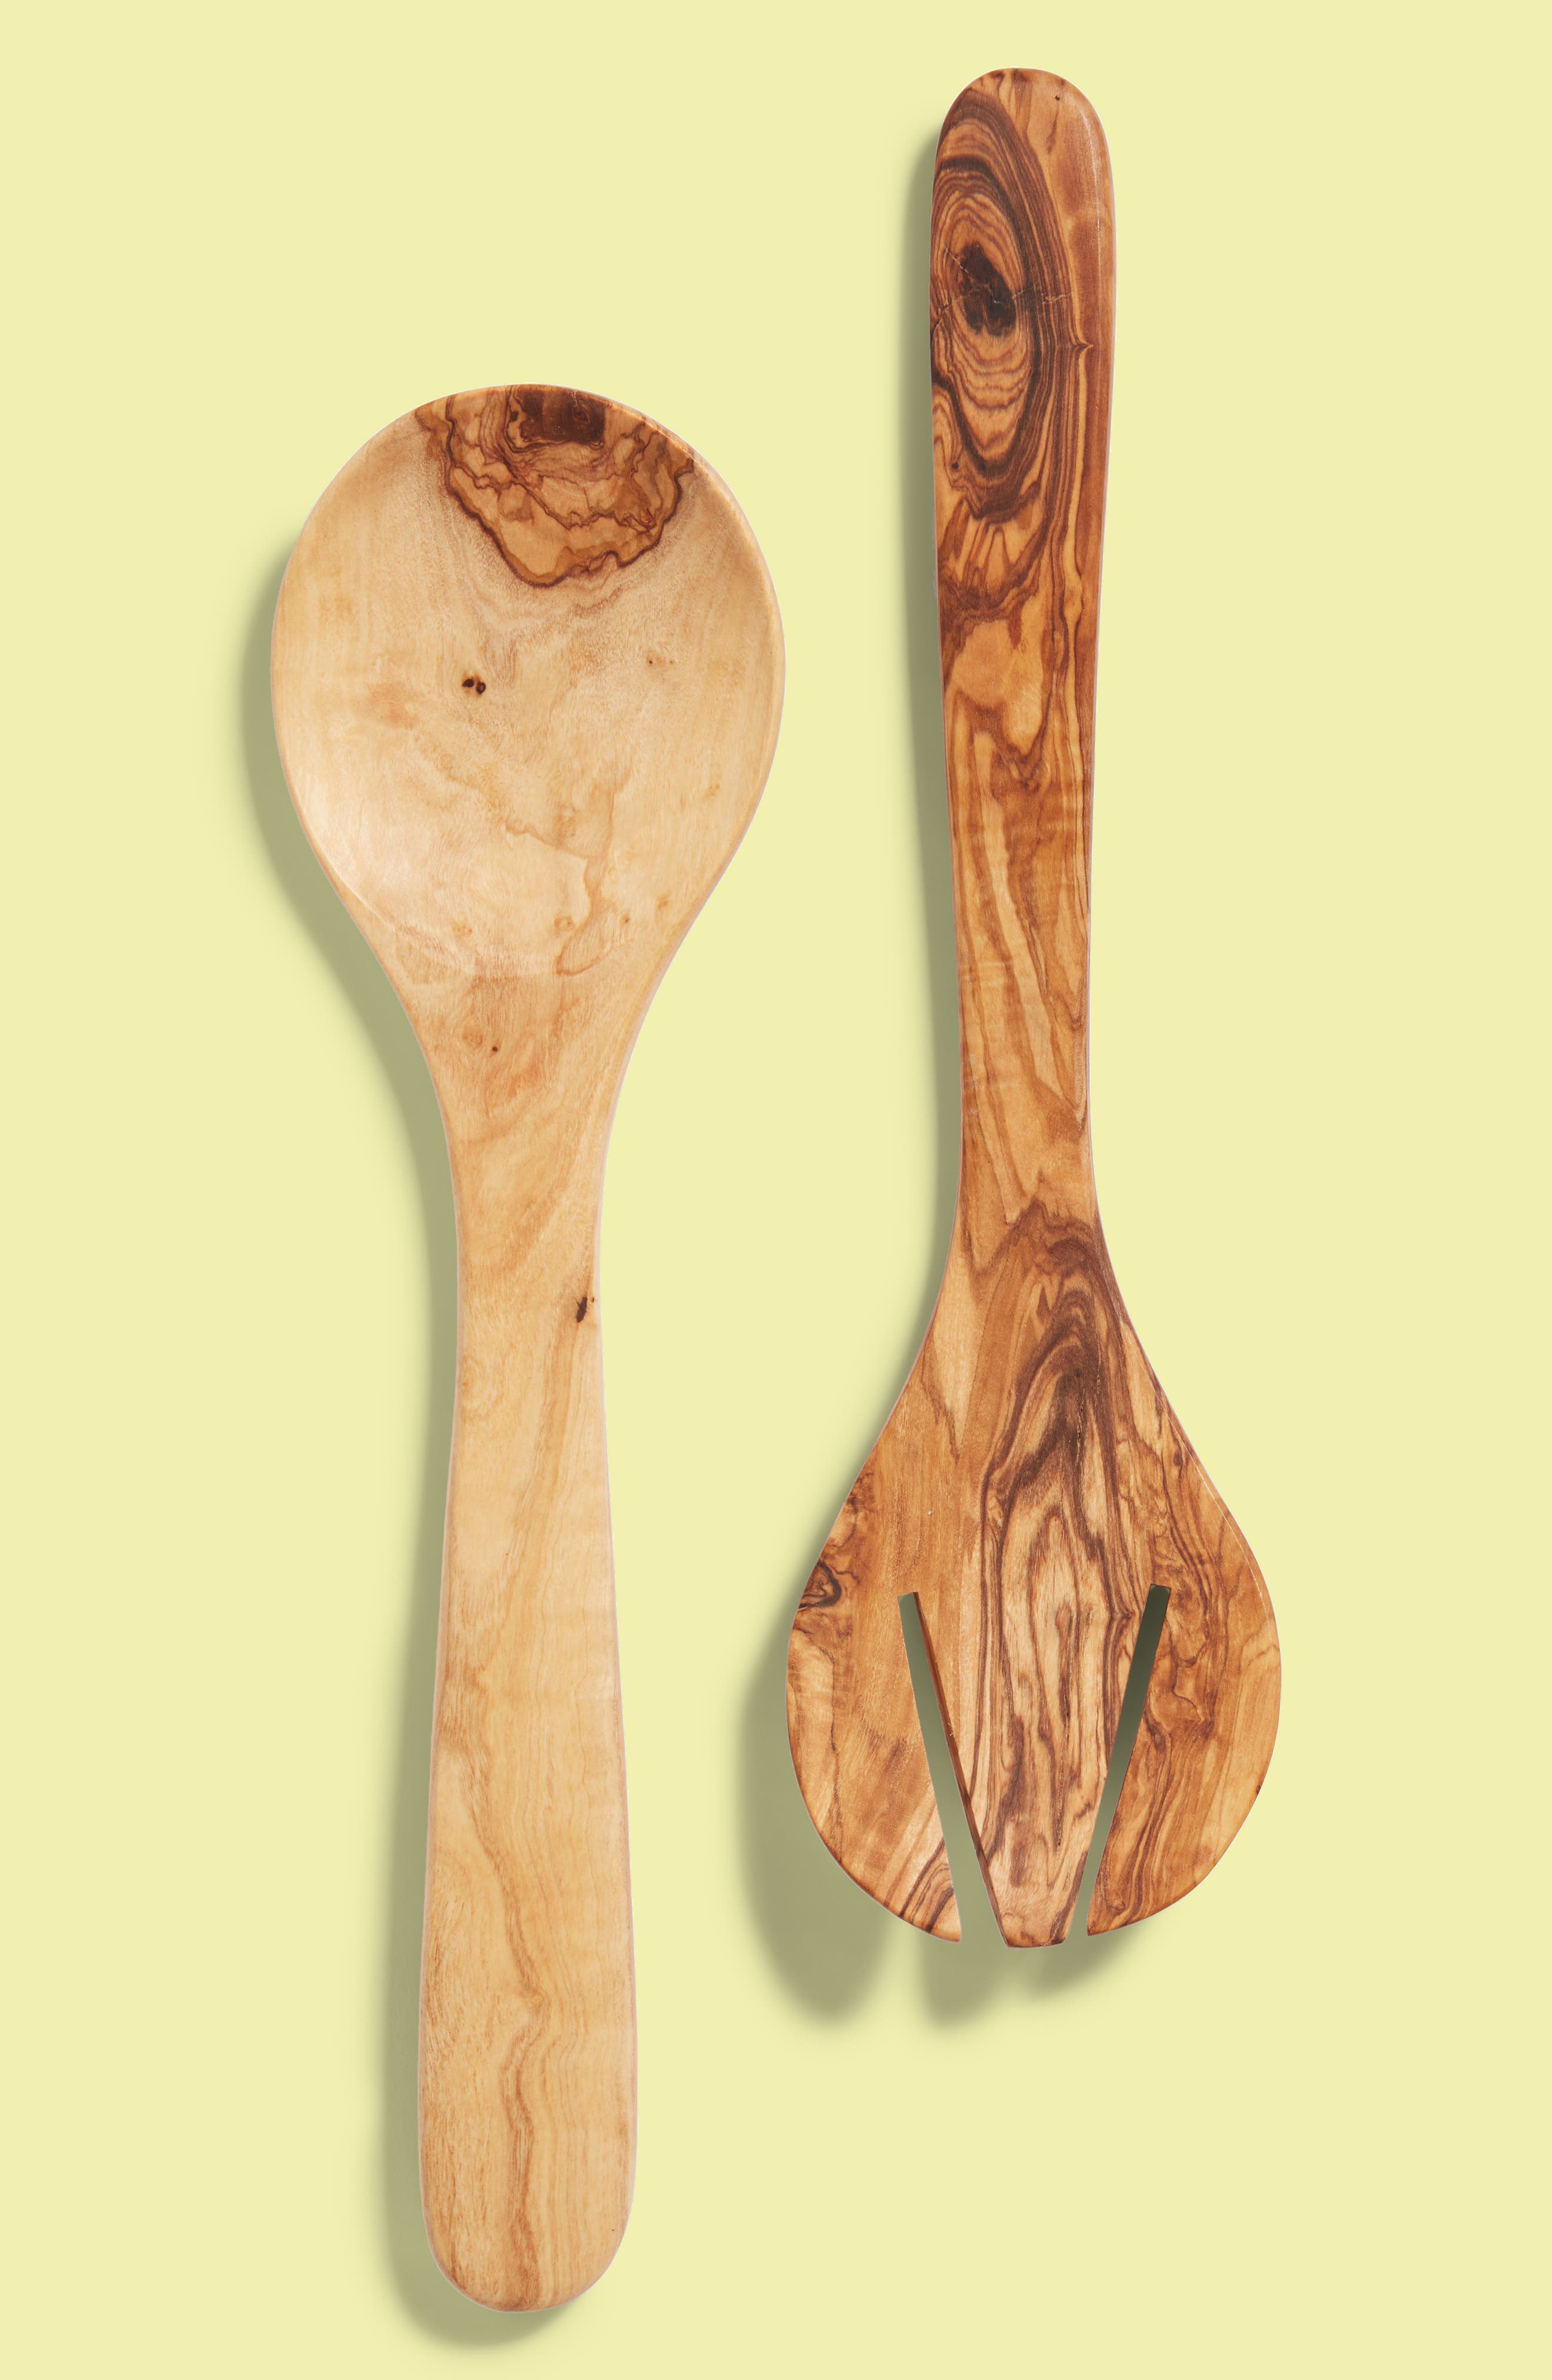 2-Piece Olive Wood Round Serving Set,                             Main thumbnail 1, color,                             Wood